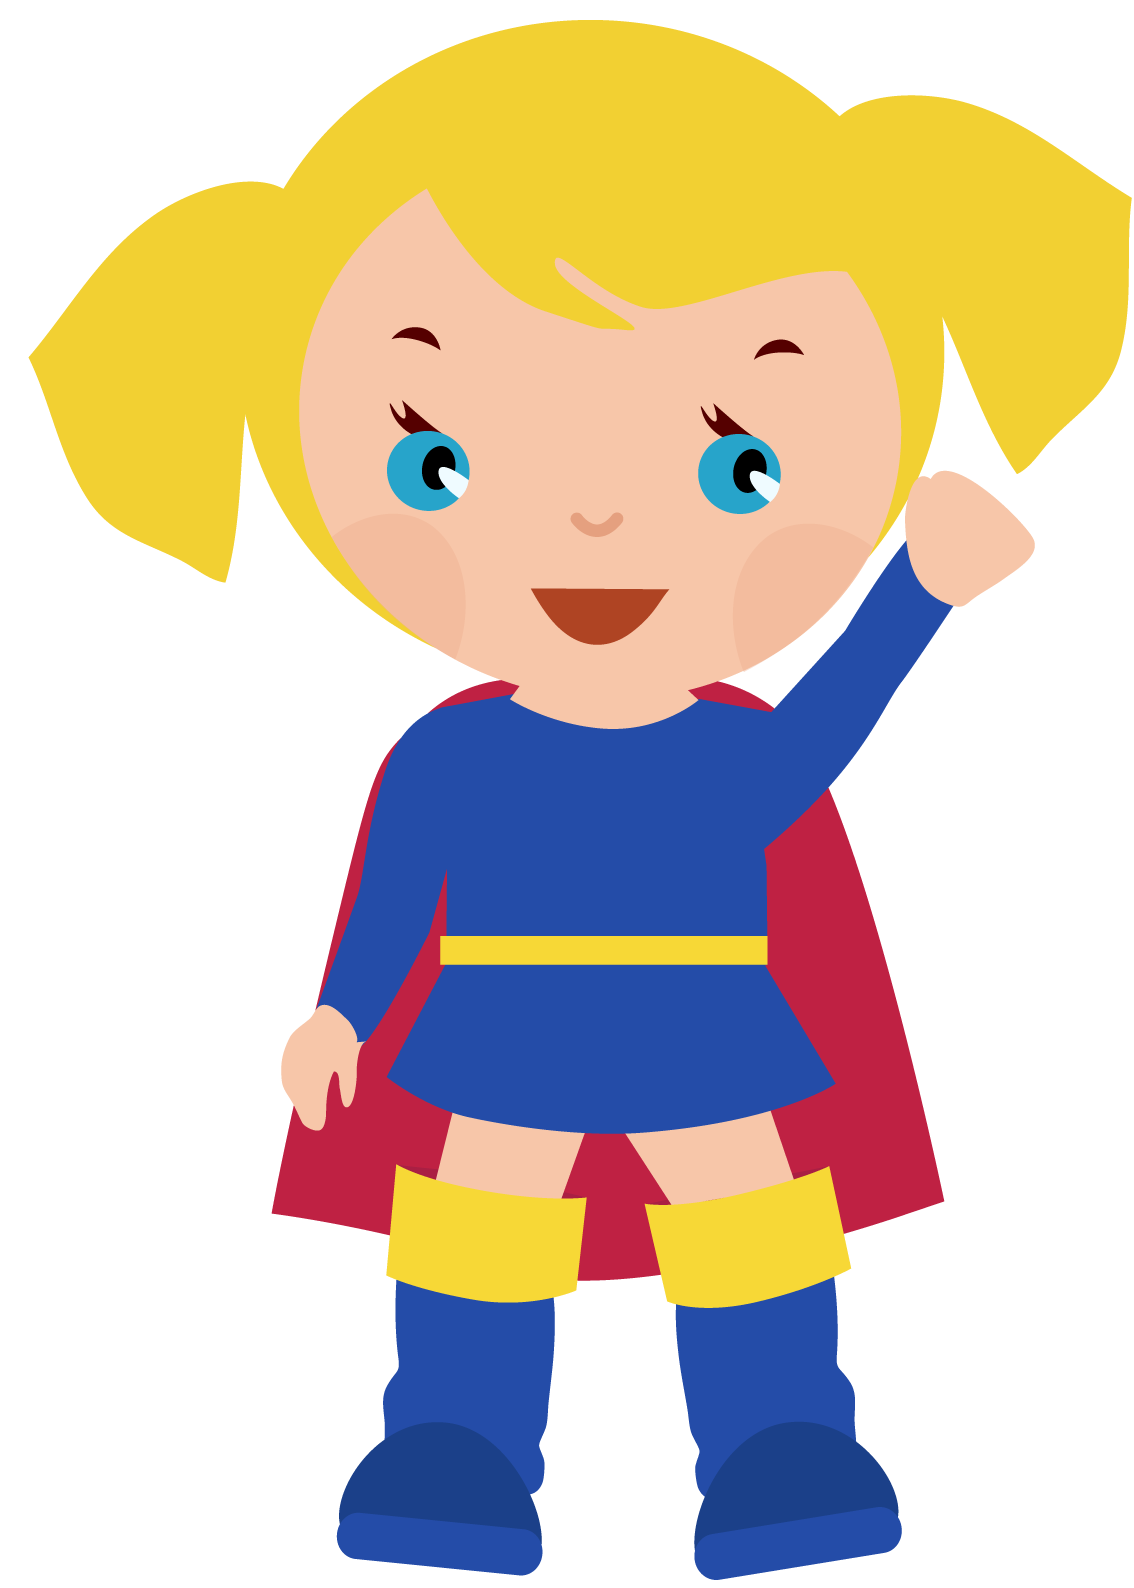 Supergirl Free Clipart #1 - Supergirl Clipart